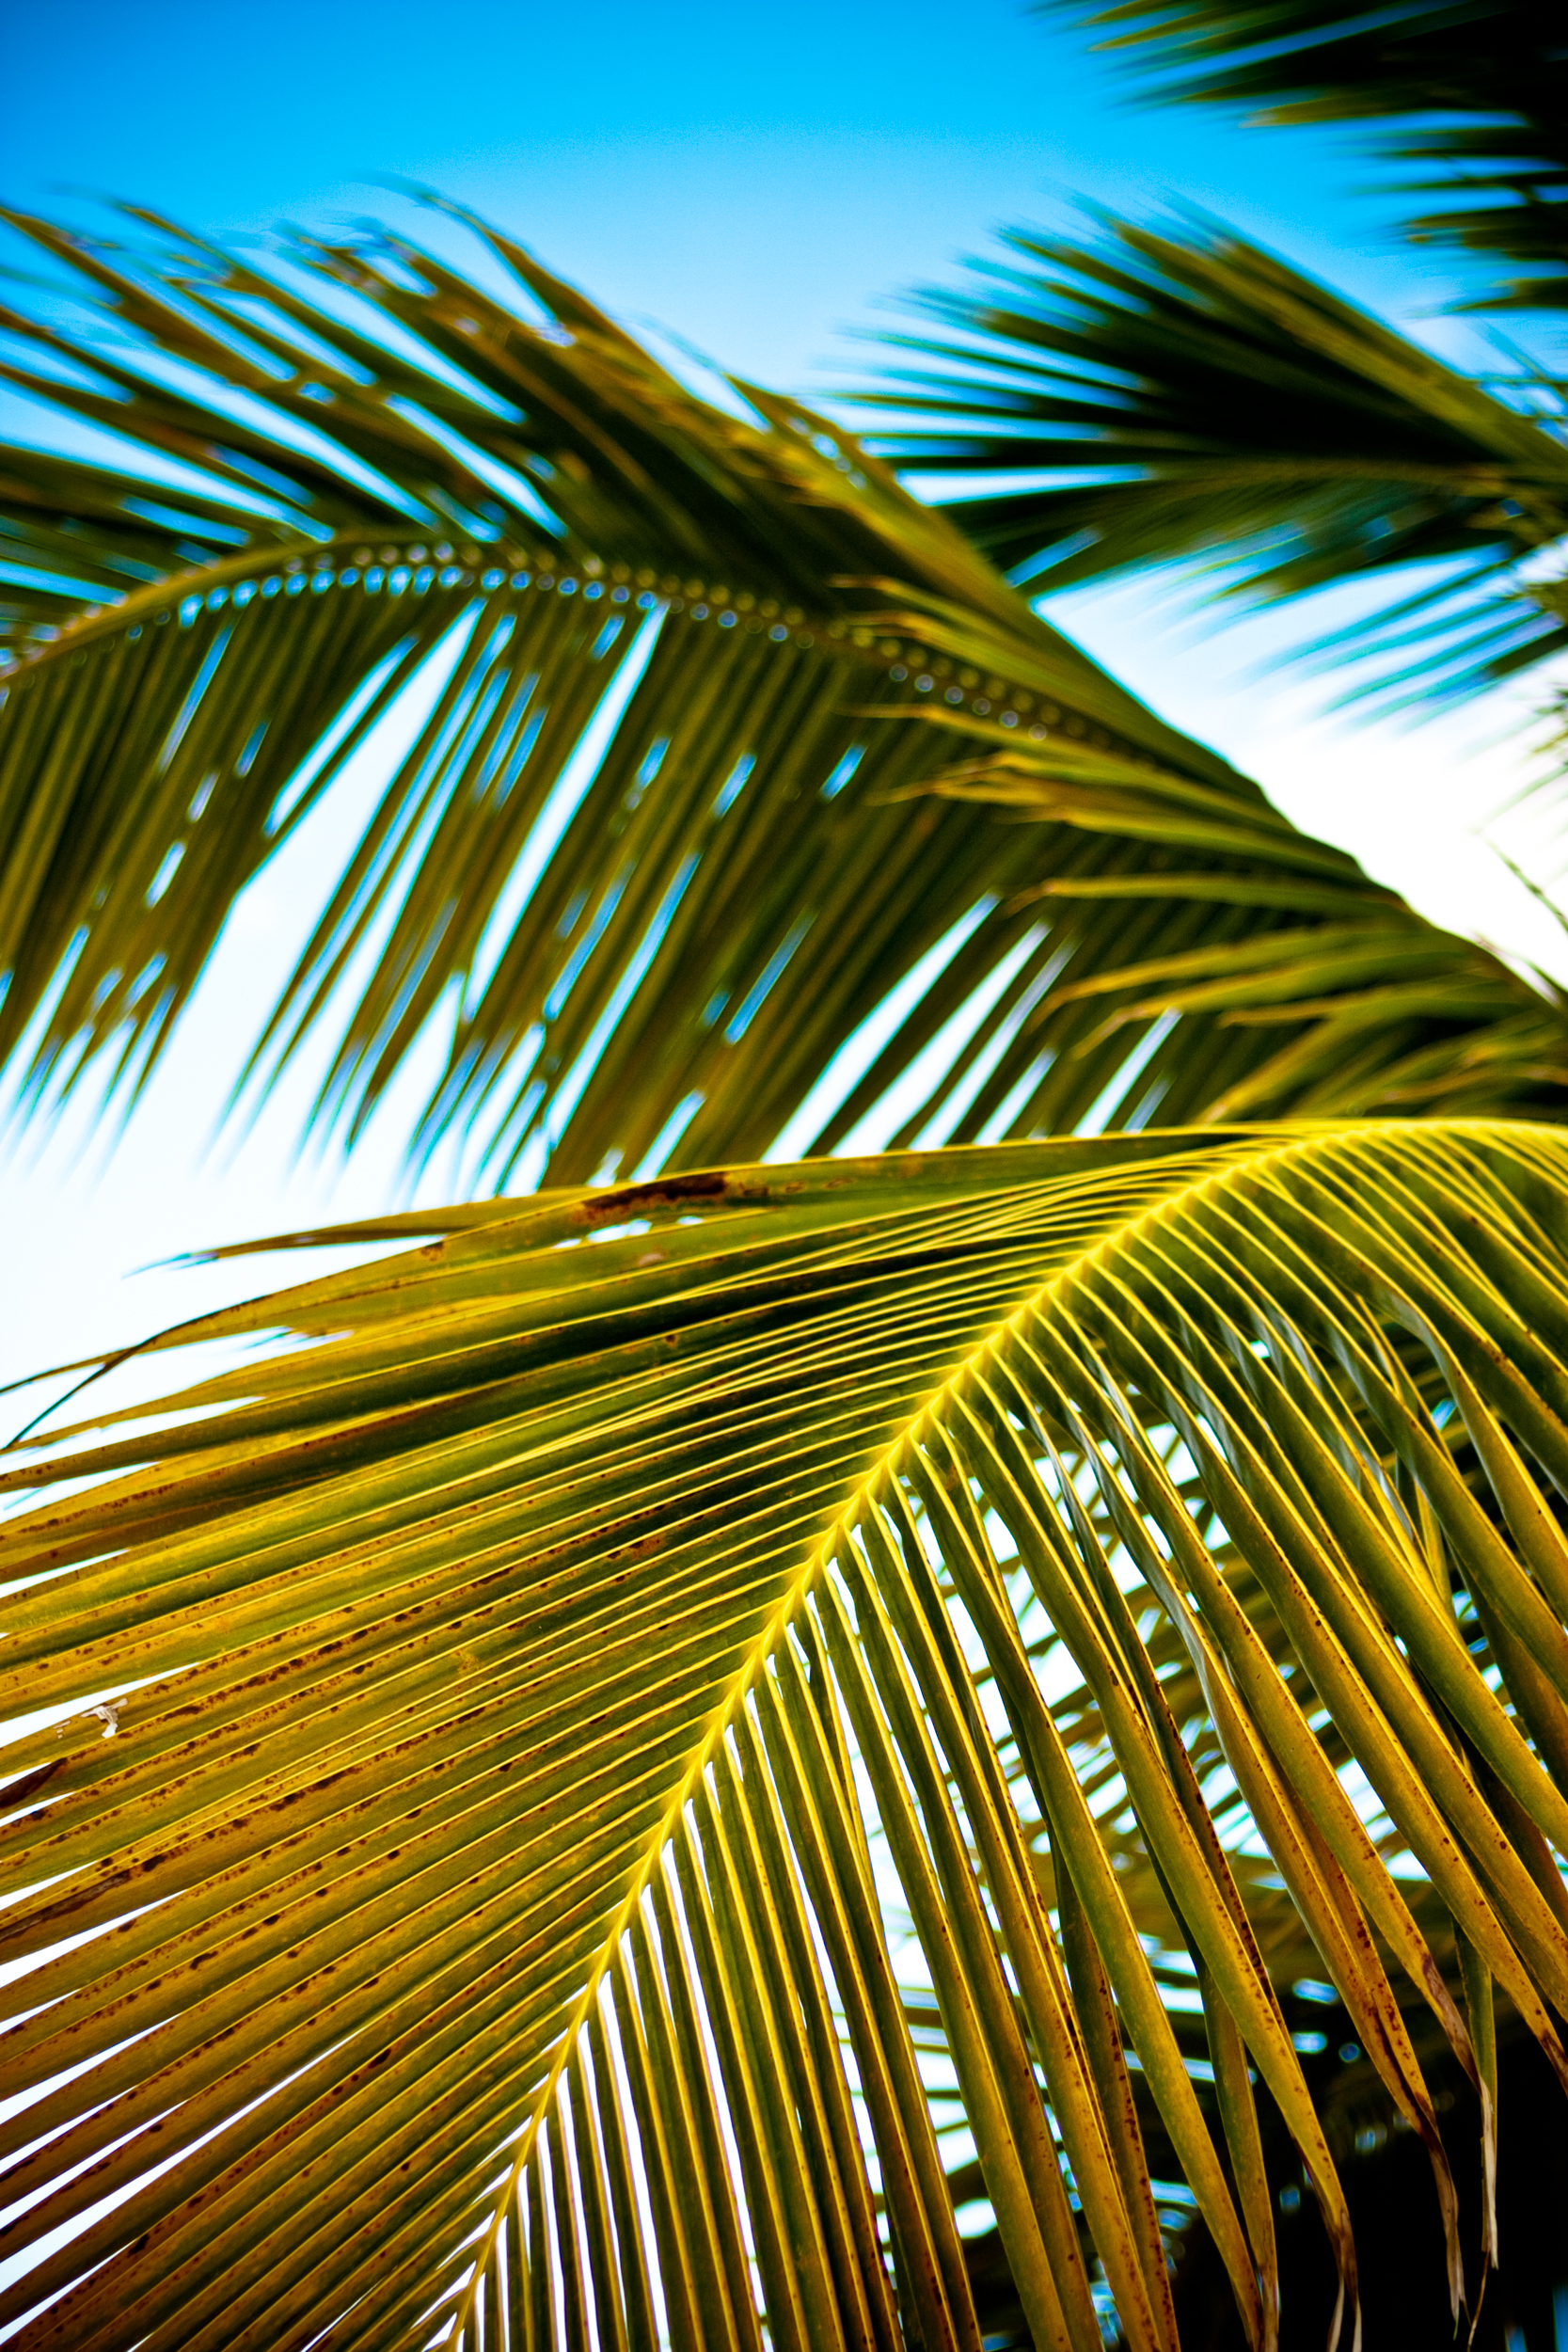 Colorful detail image of palm branches set against a blue sky.